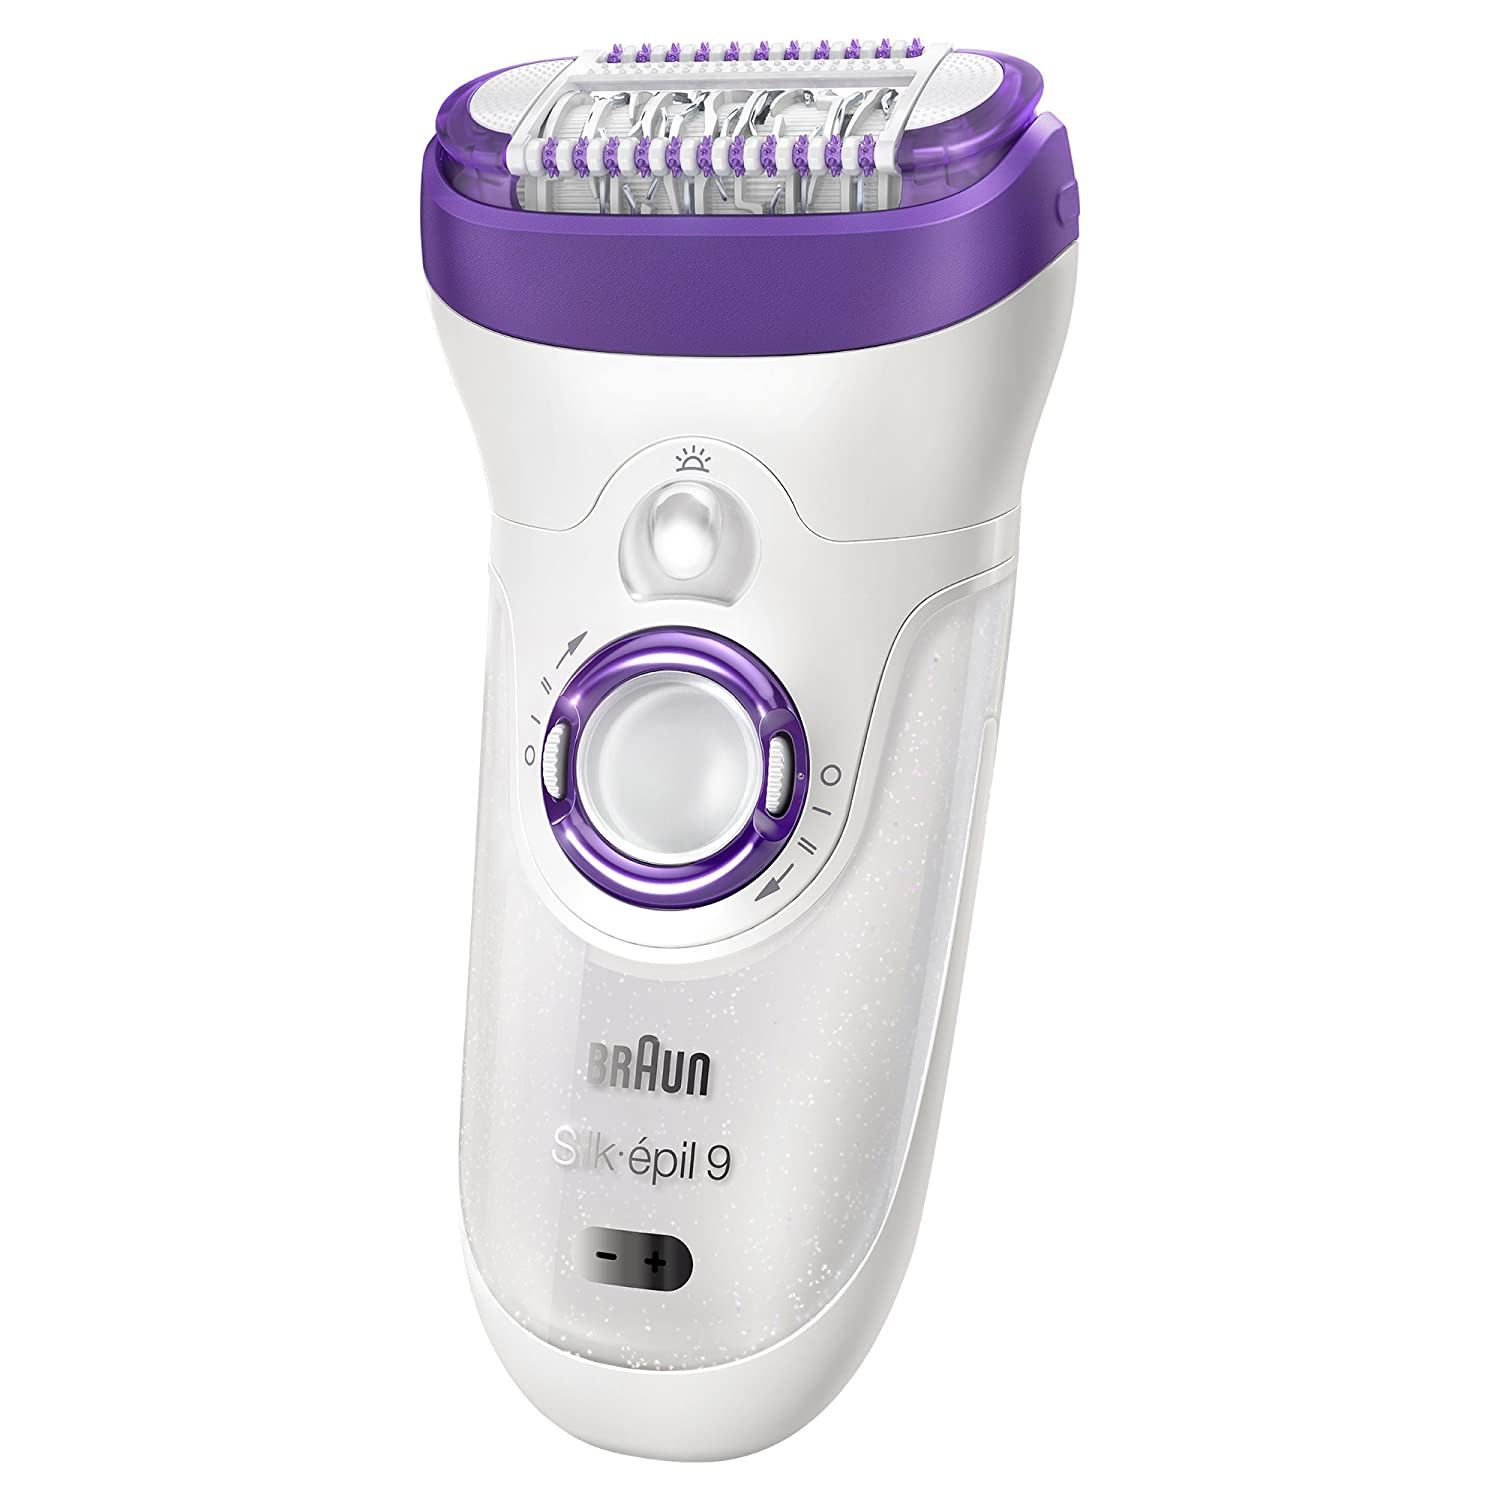 Braun silk-epil 9 9-579 best electric razor for women